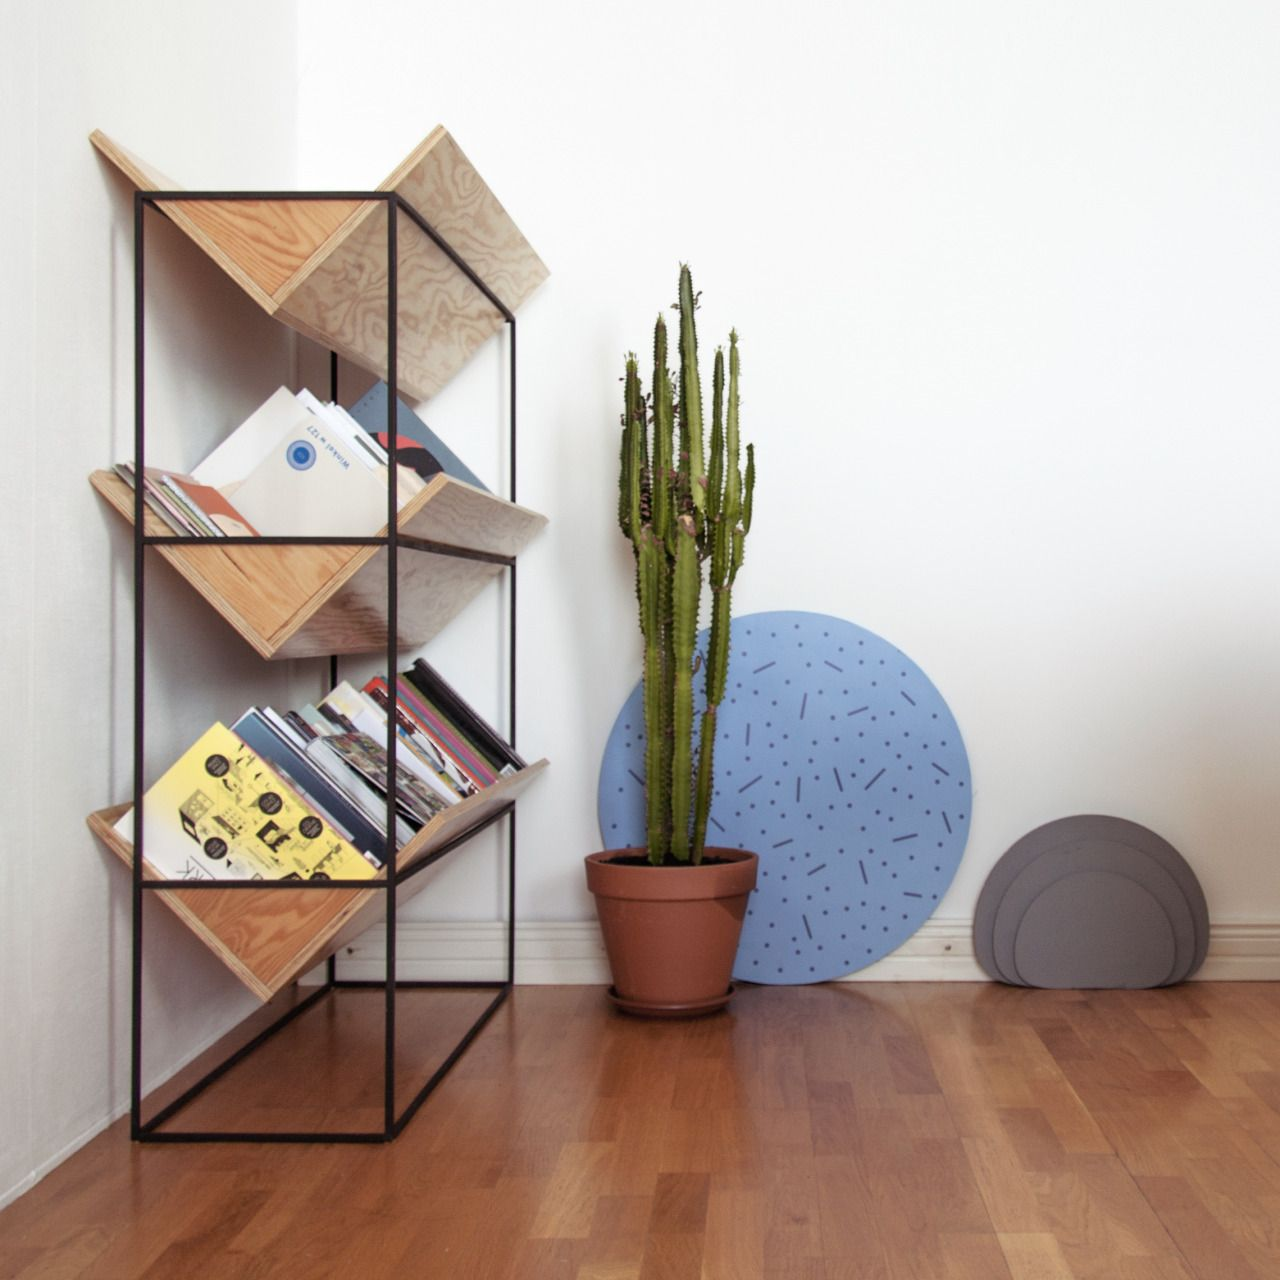 Pretty record storage house pretties mostly diy in Meuble hifi diy